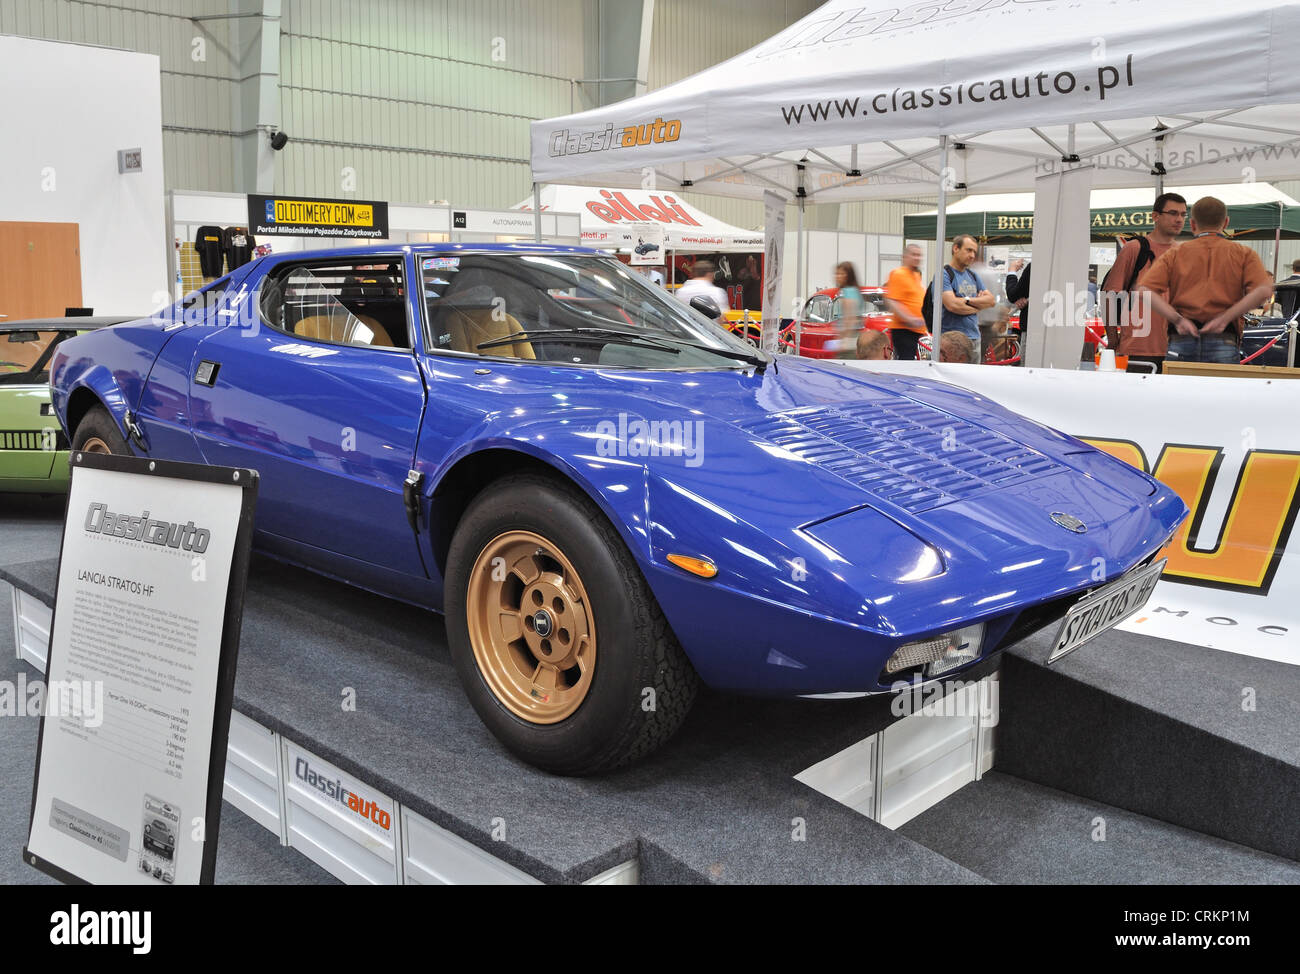 old lancia sports car stockfotos & old lancia sports car bilder - alamy